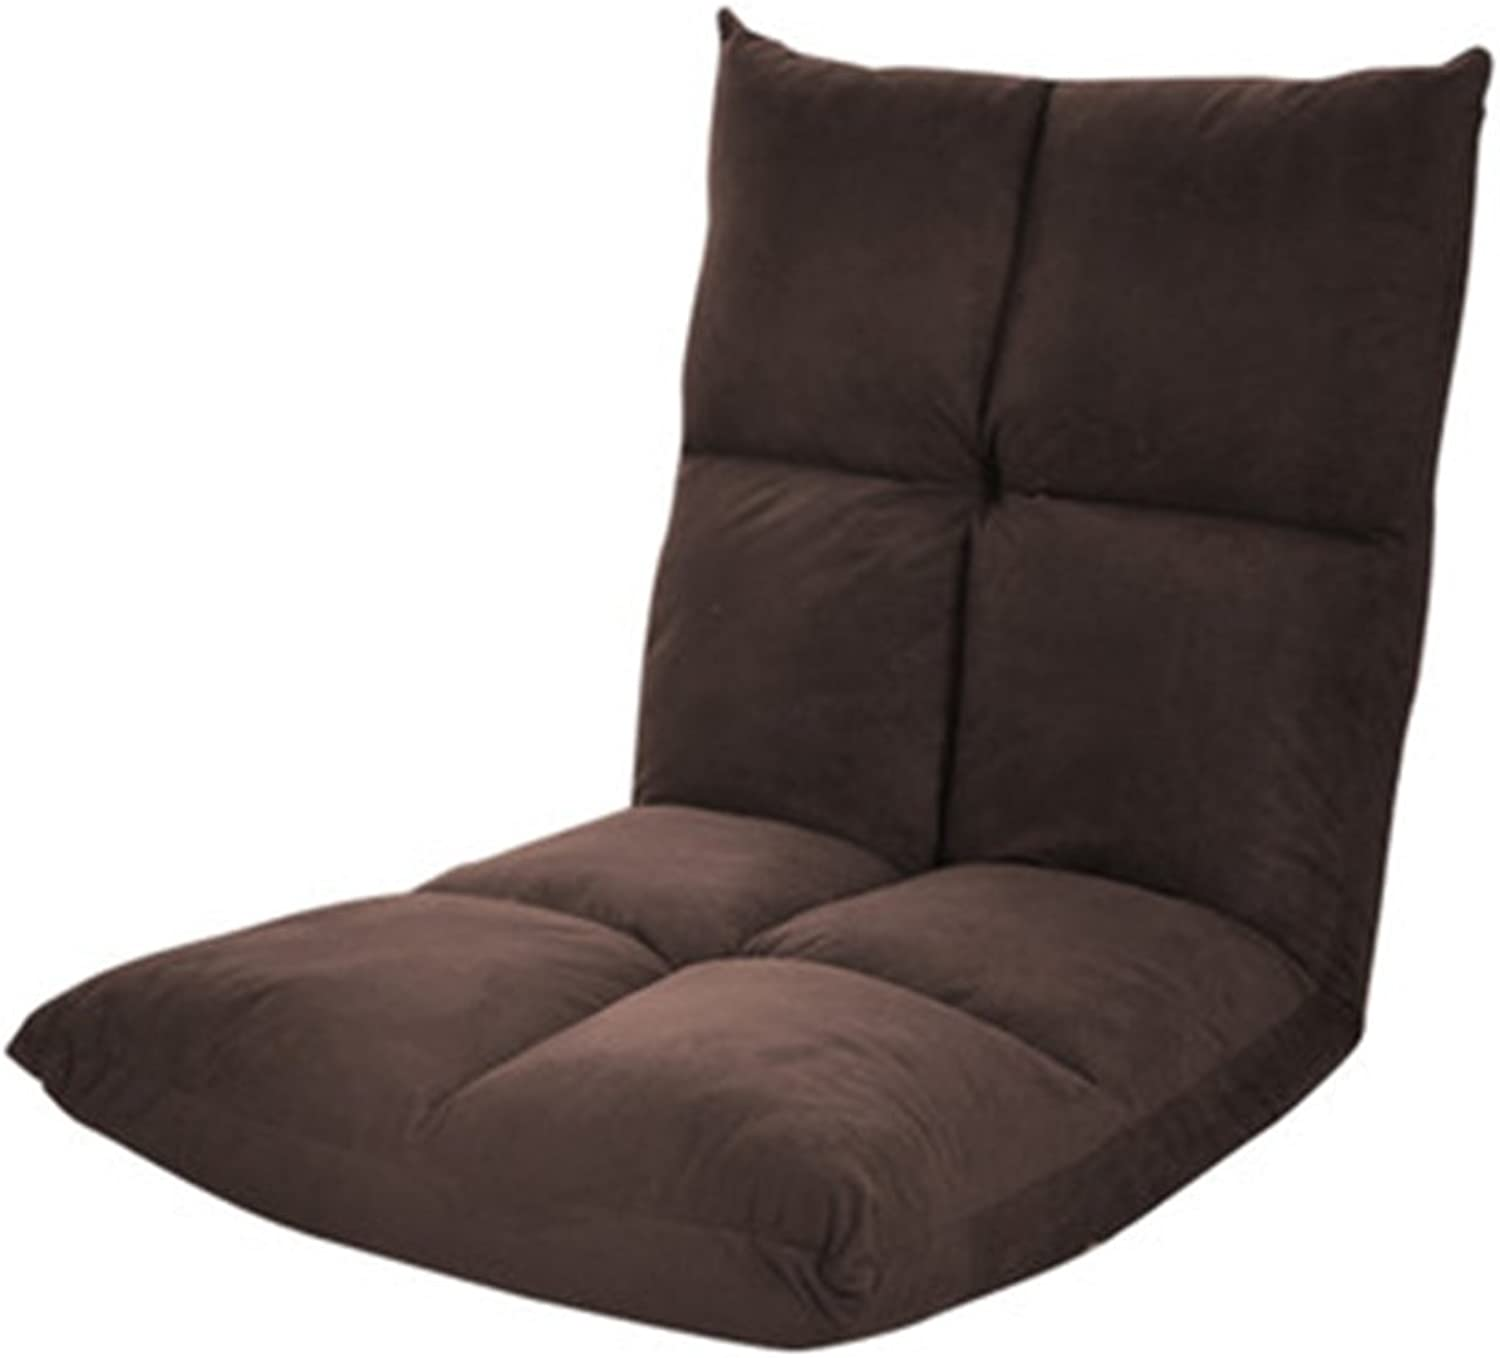 MAHZONG Recliners Lazy Sofa Bedroom Folding Bed Chair (color   Brown)